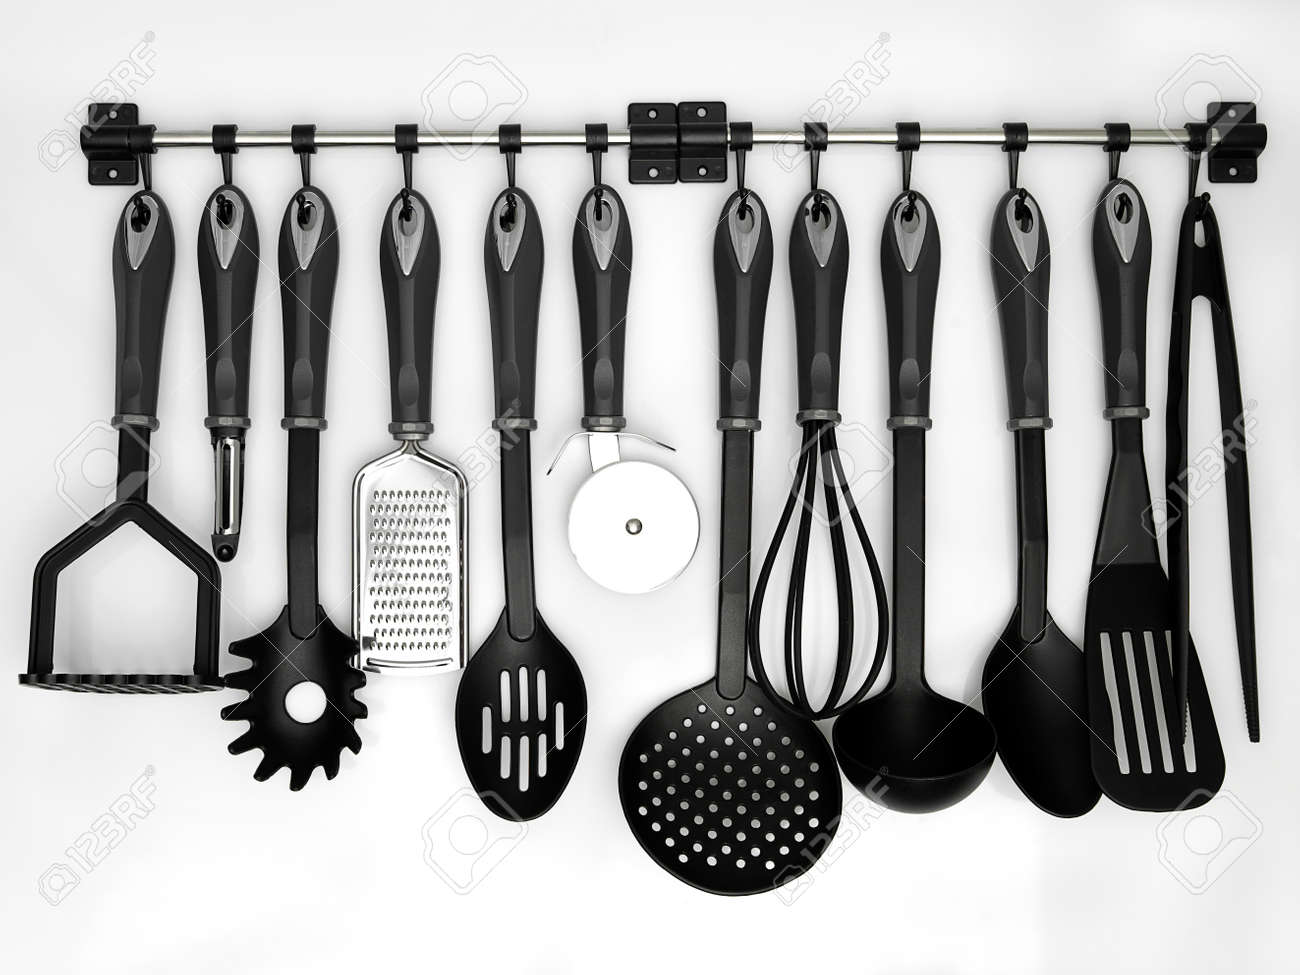 Review windows 10 mobile build 14328 windows clip60 - Hanging Kitchen Tools Kitchen Utensils Hanging White Background Download Hanging Kitchen Tools Kitchen Utensils Hanging White Background Download